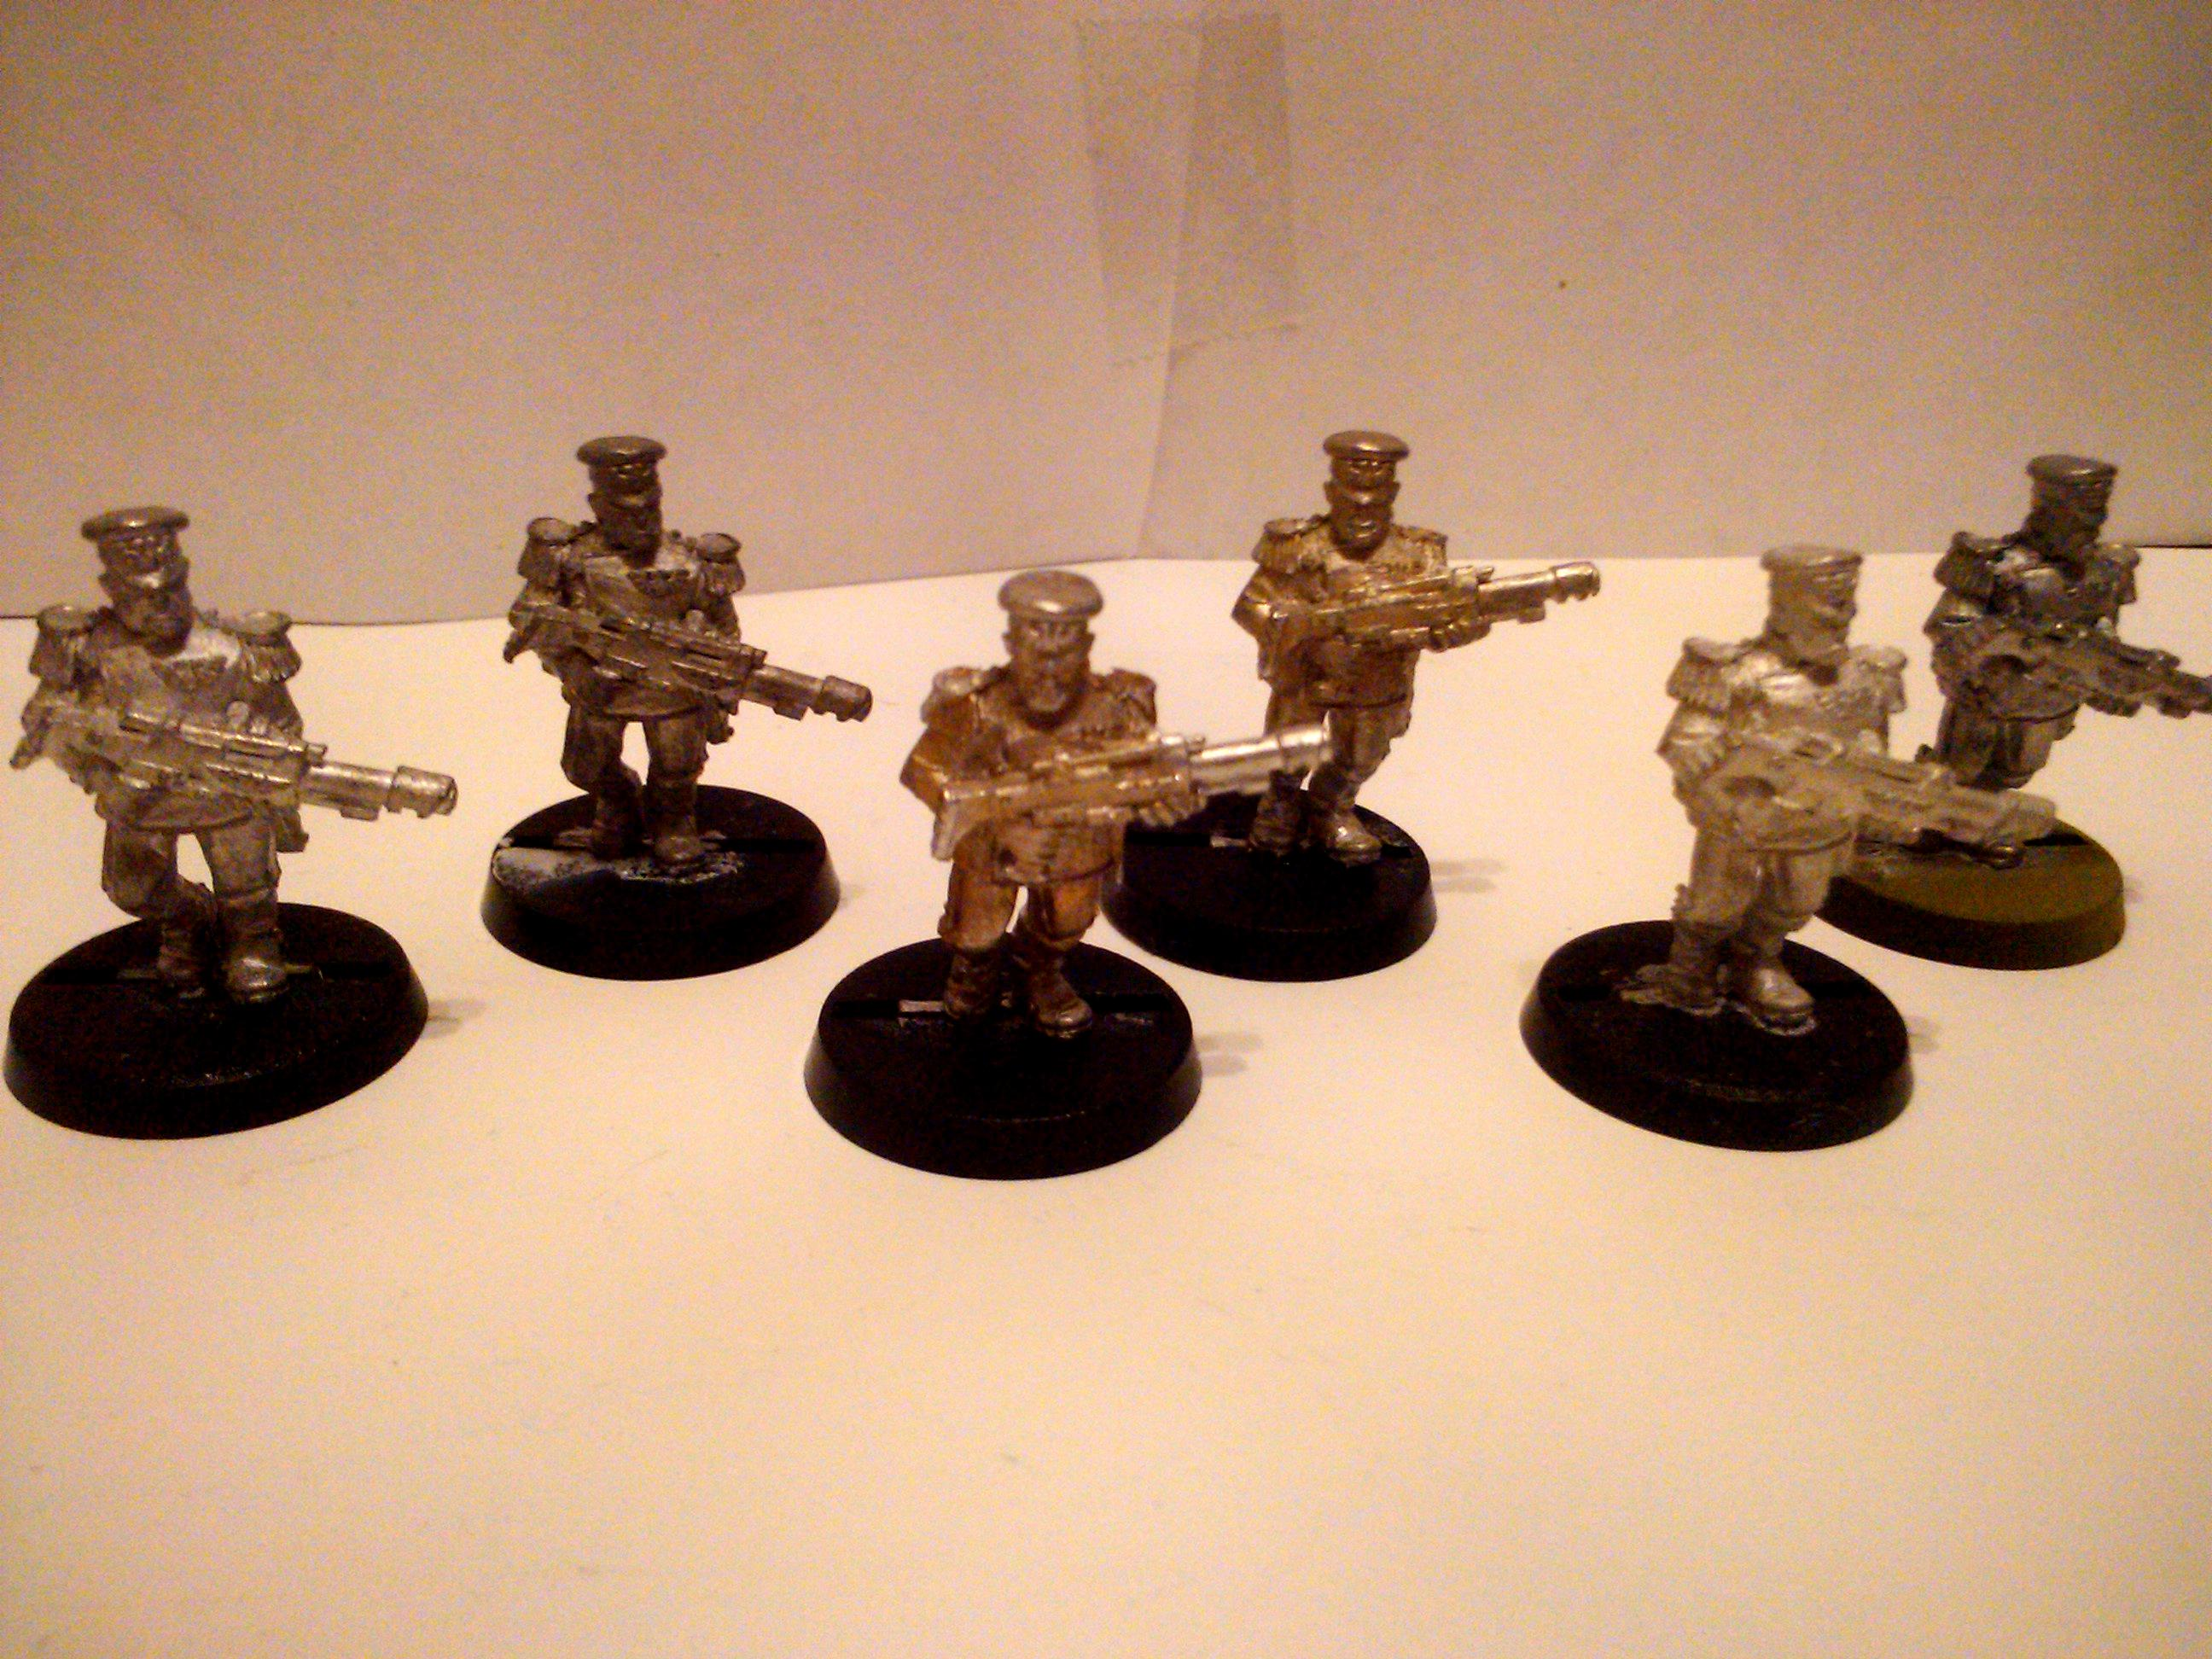 Imperial Guard, Mordian Iron Guard, Warhammer 40,000